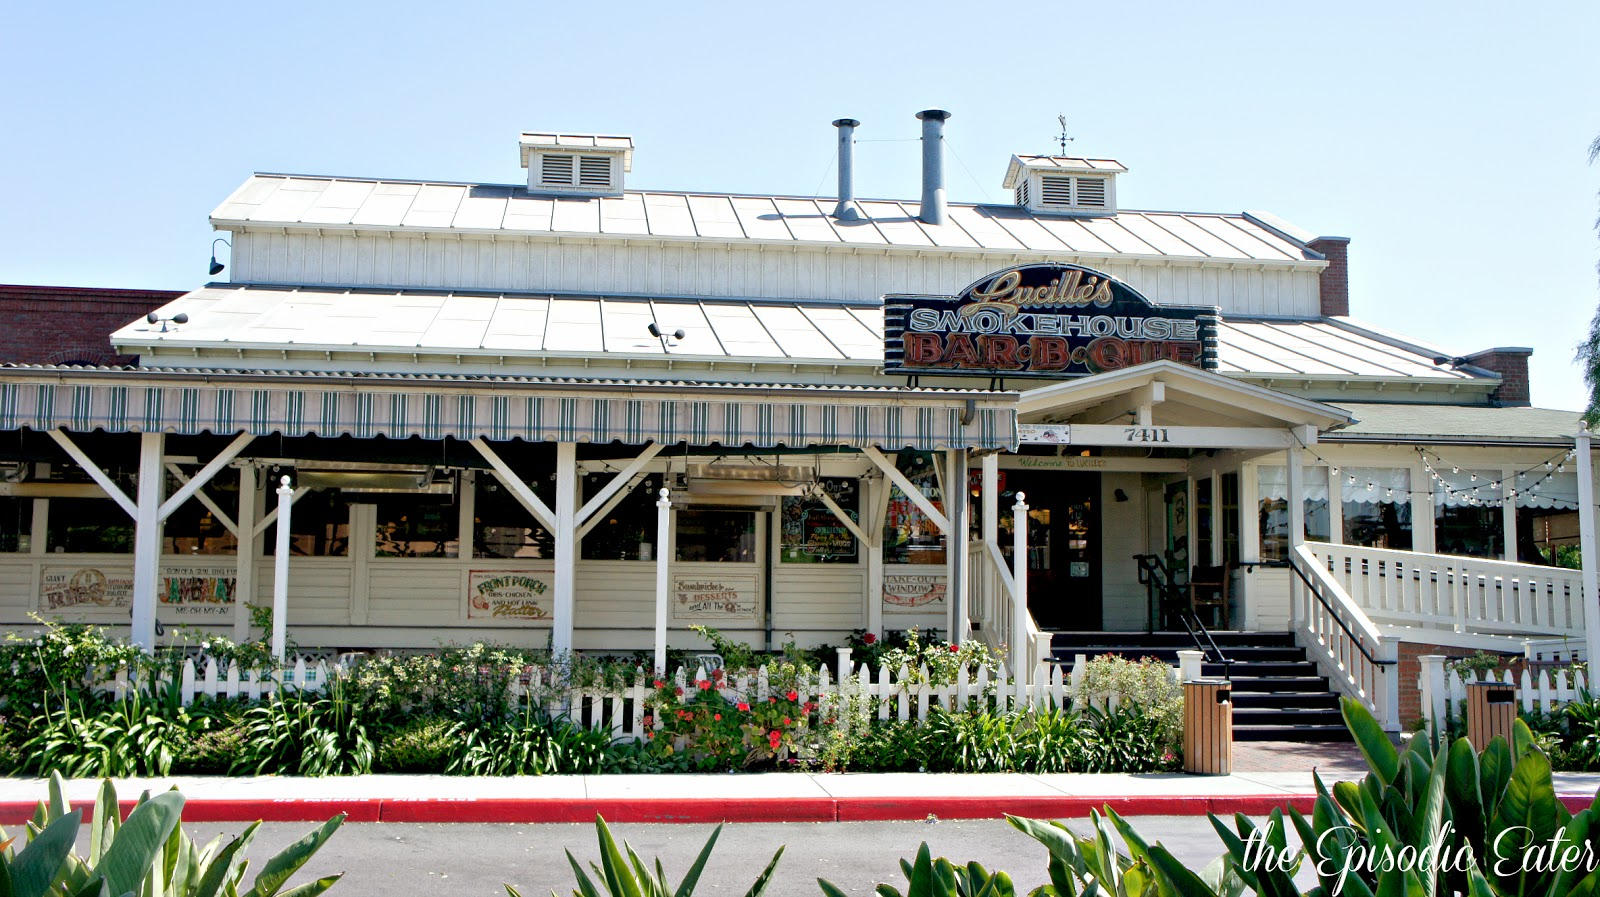 Lucille's Smokehouse BBQ (western U.S.) on The Episodic Eater